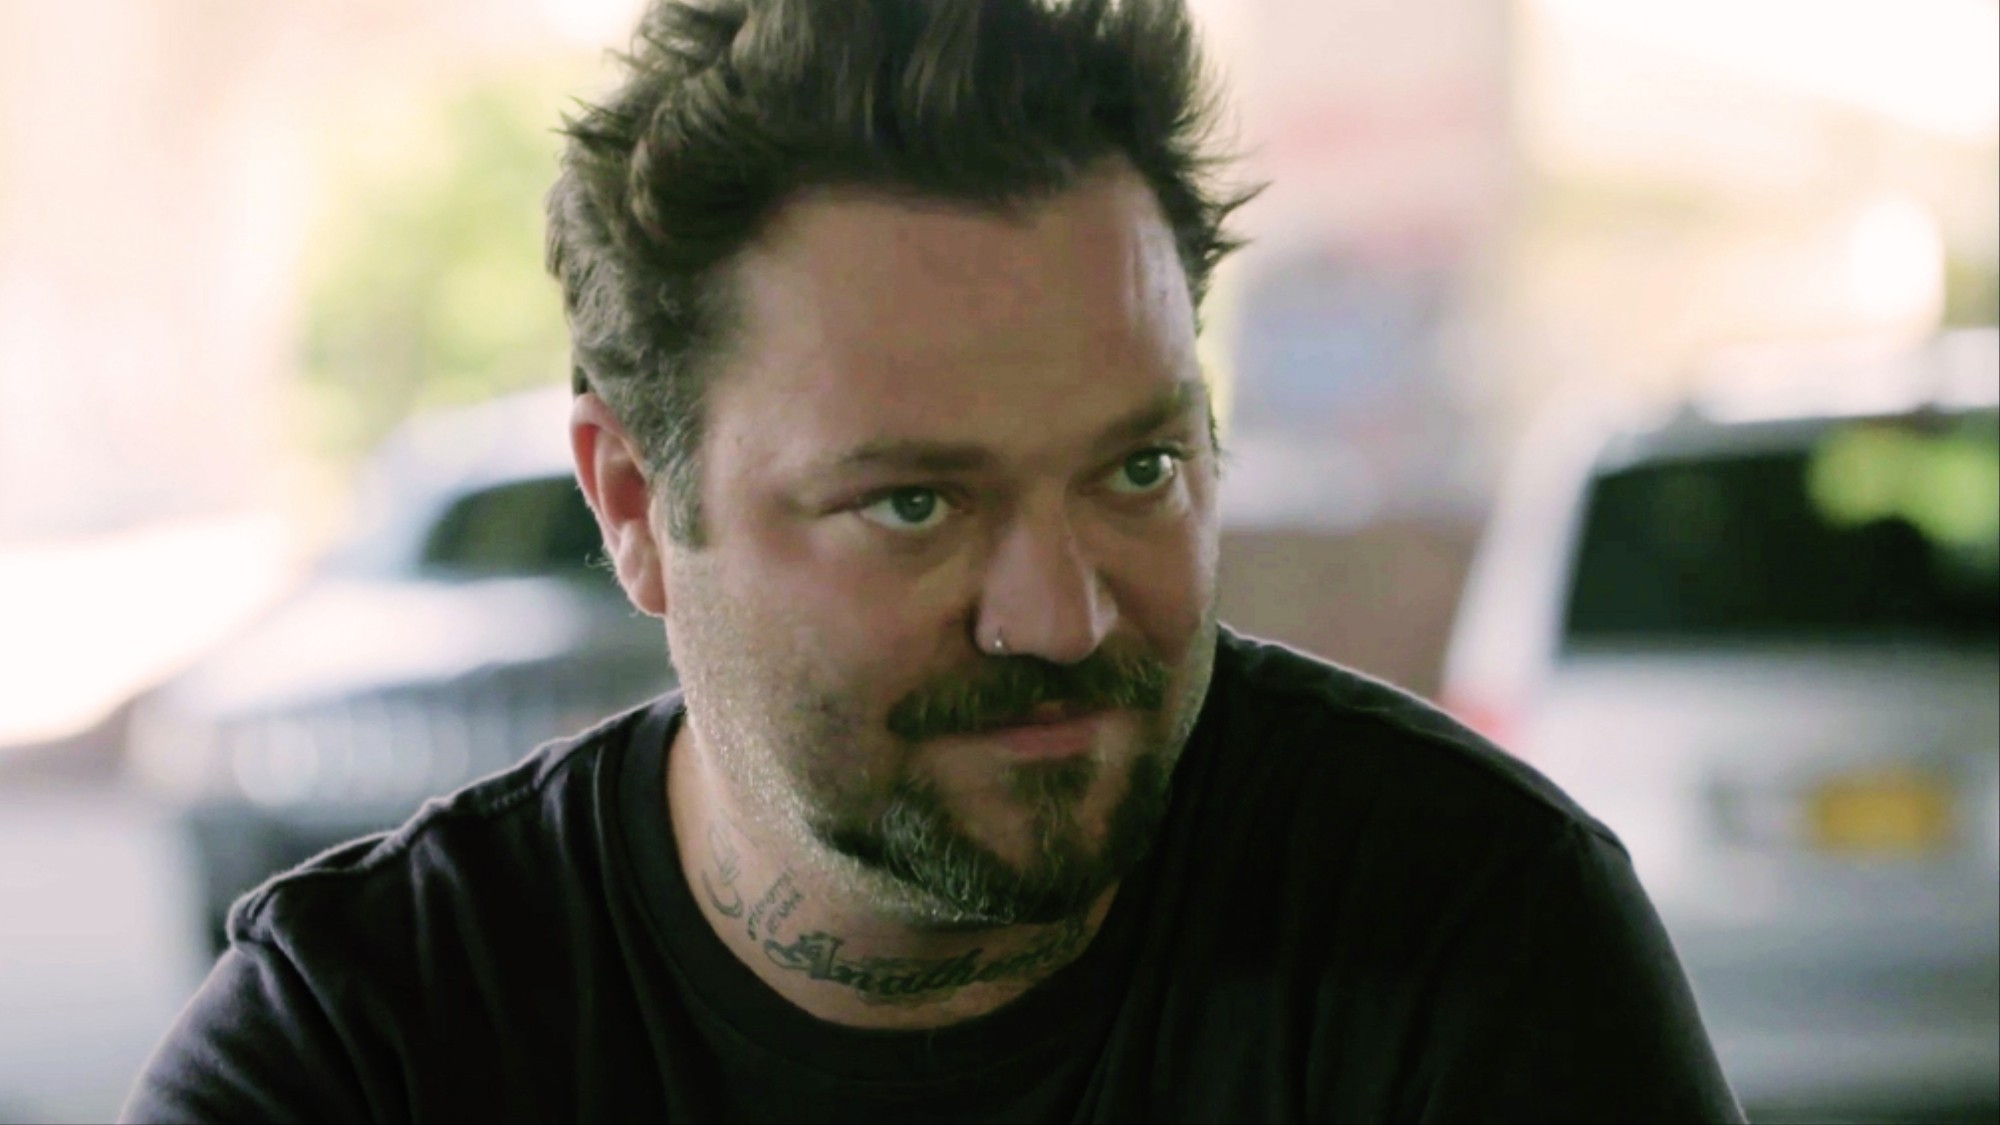 Bam Margera On How He Overcame Bulimia and Alcoholism - VICE